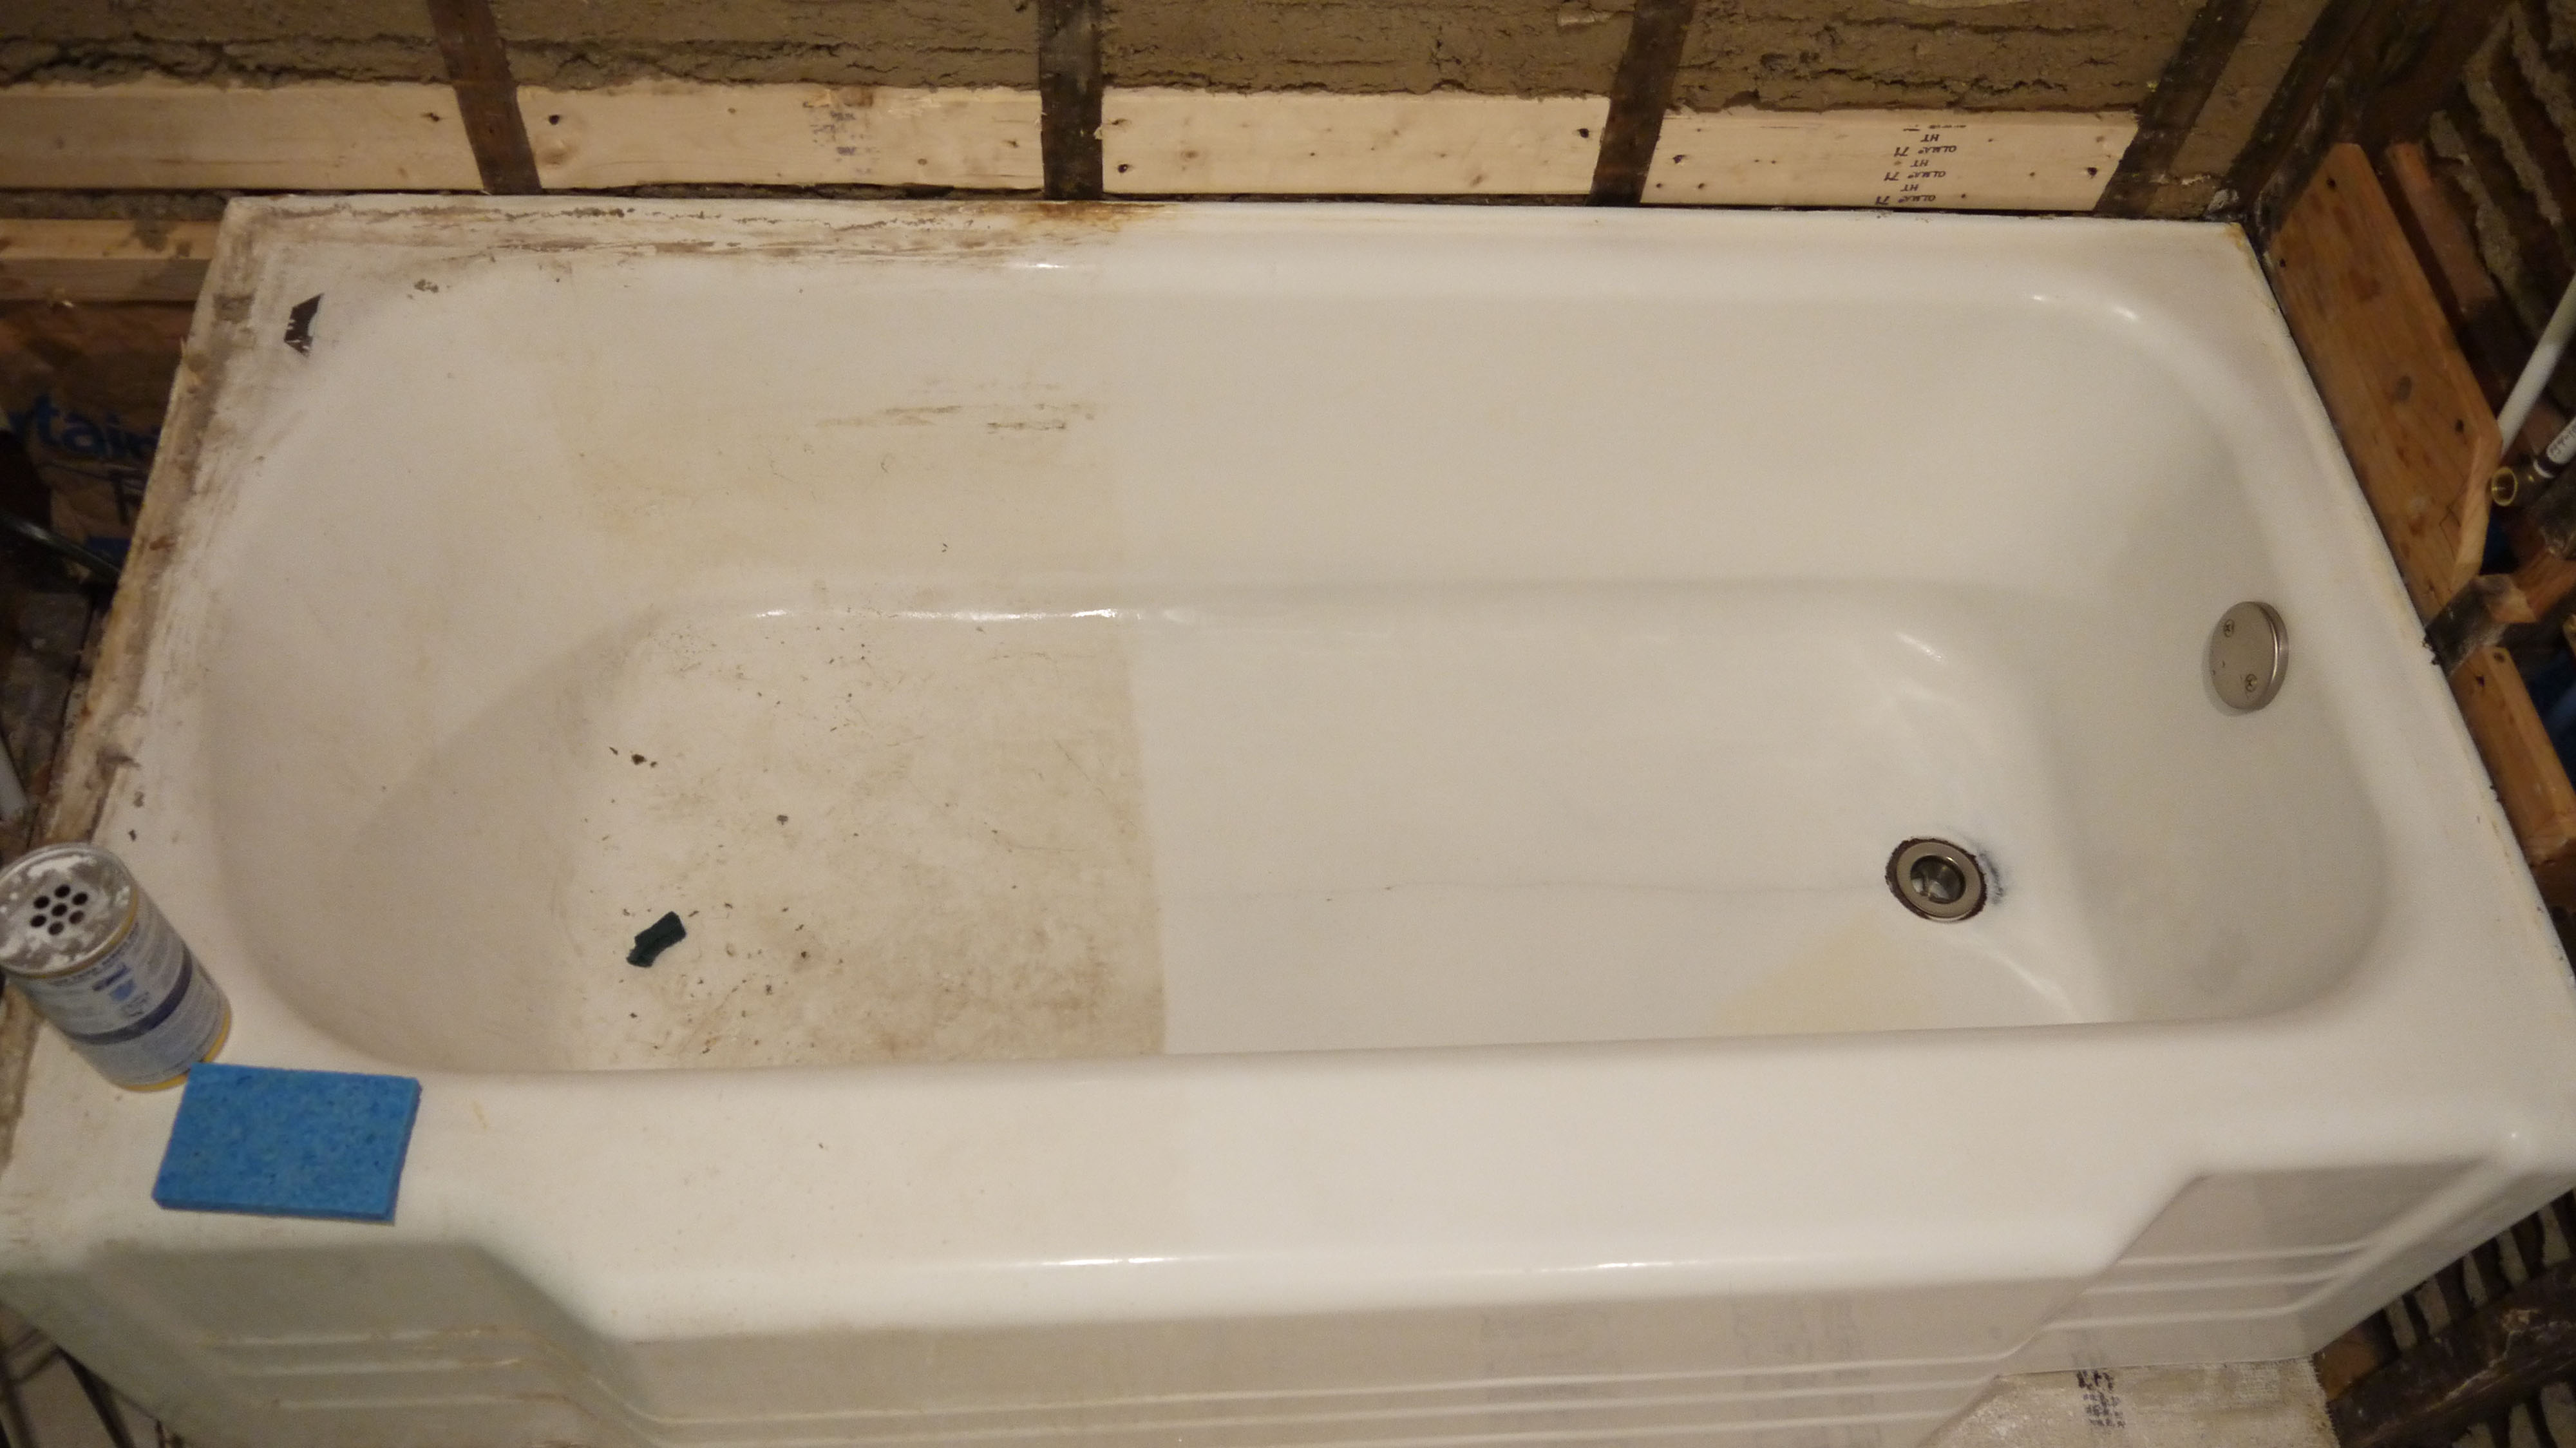 Tired of Bathtub Scratches? Try These 4 Scratch-Resistant Bathtubs ...